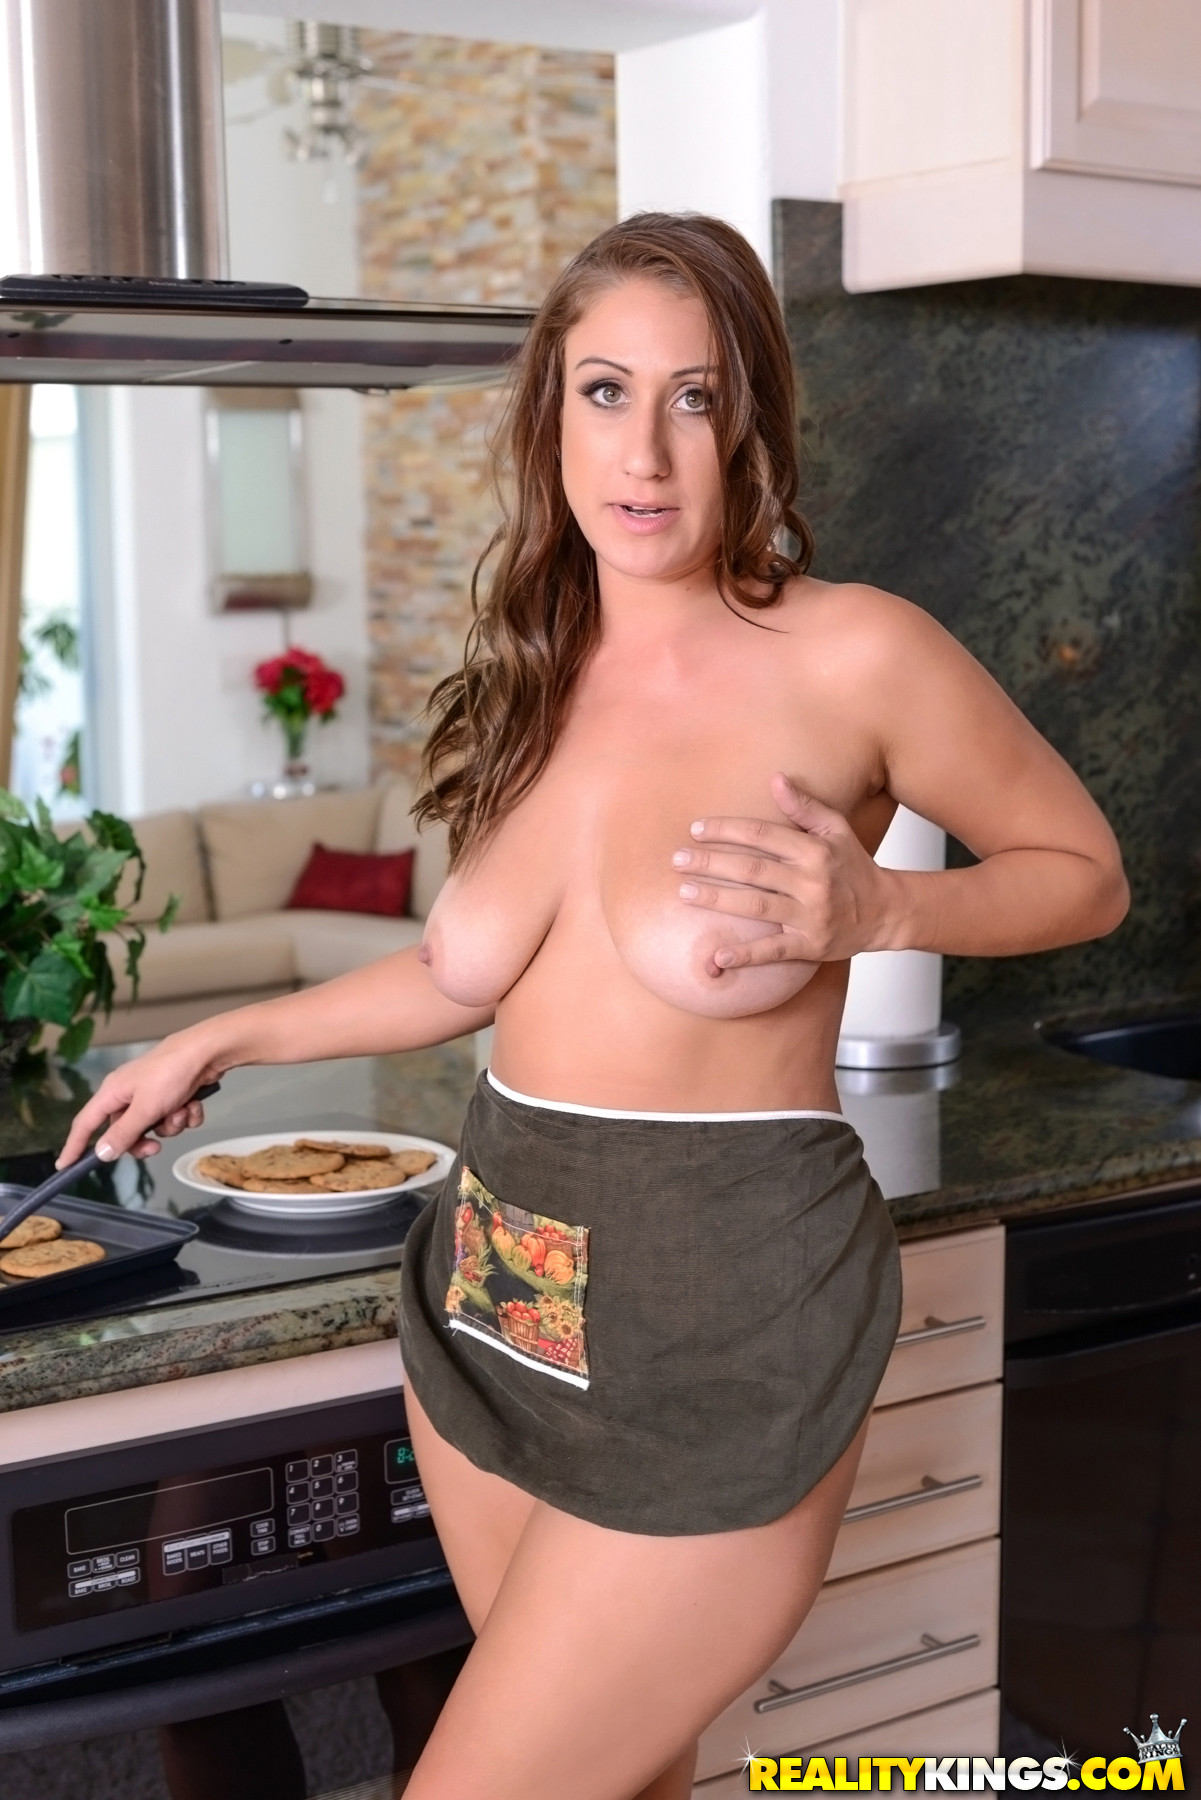 Milf Porn In Kitchen